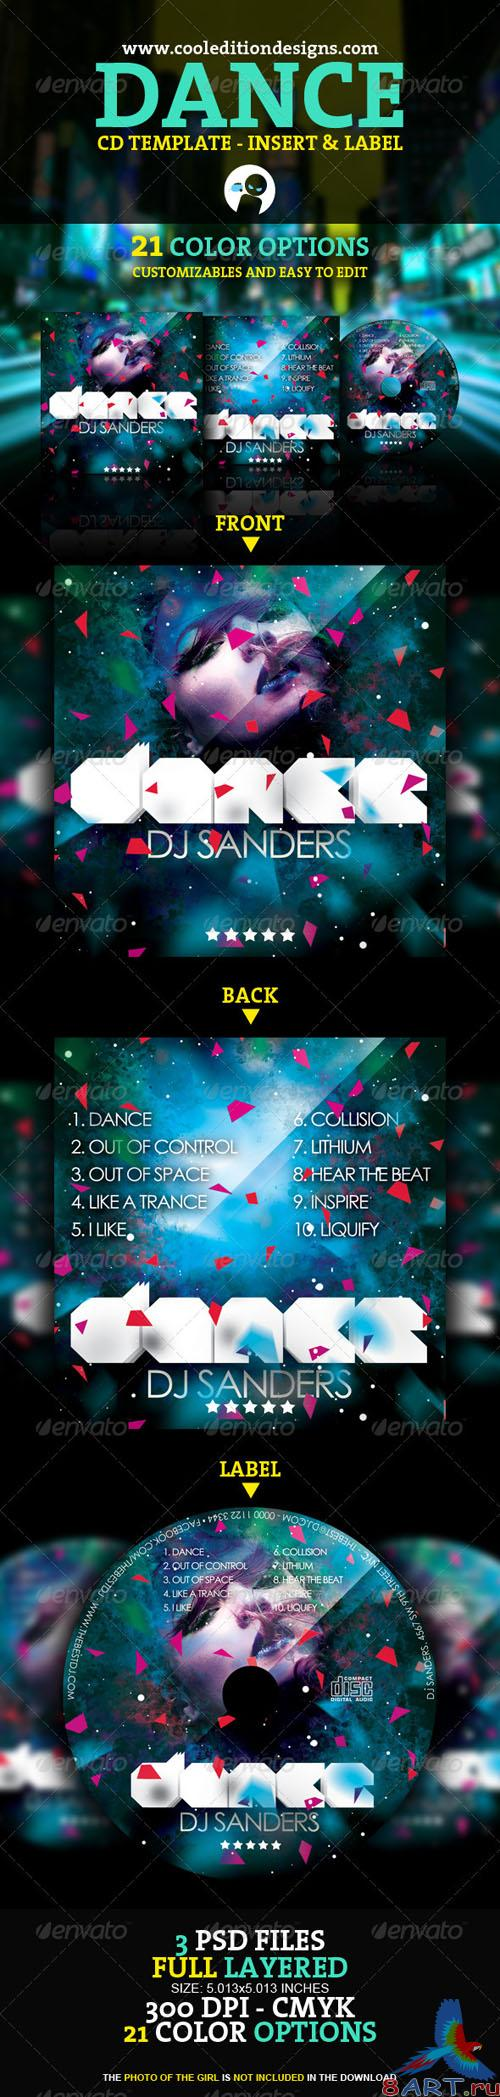 GraphicRiver - Dance CD Insert and CD Label 1608023